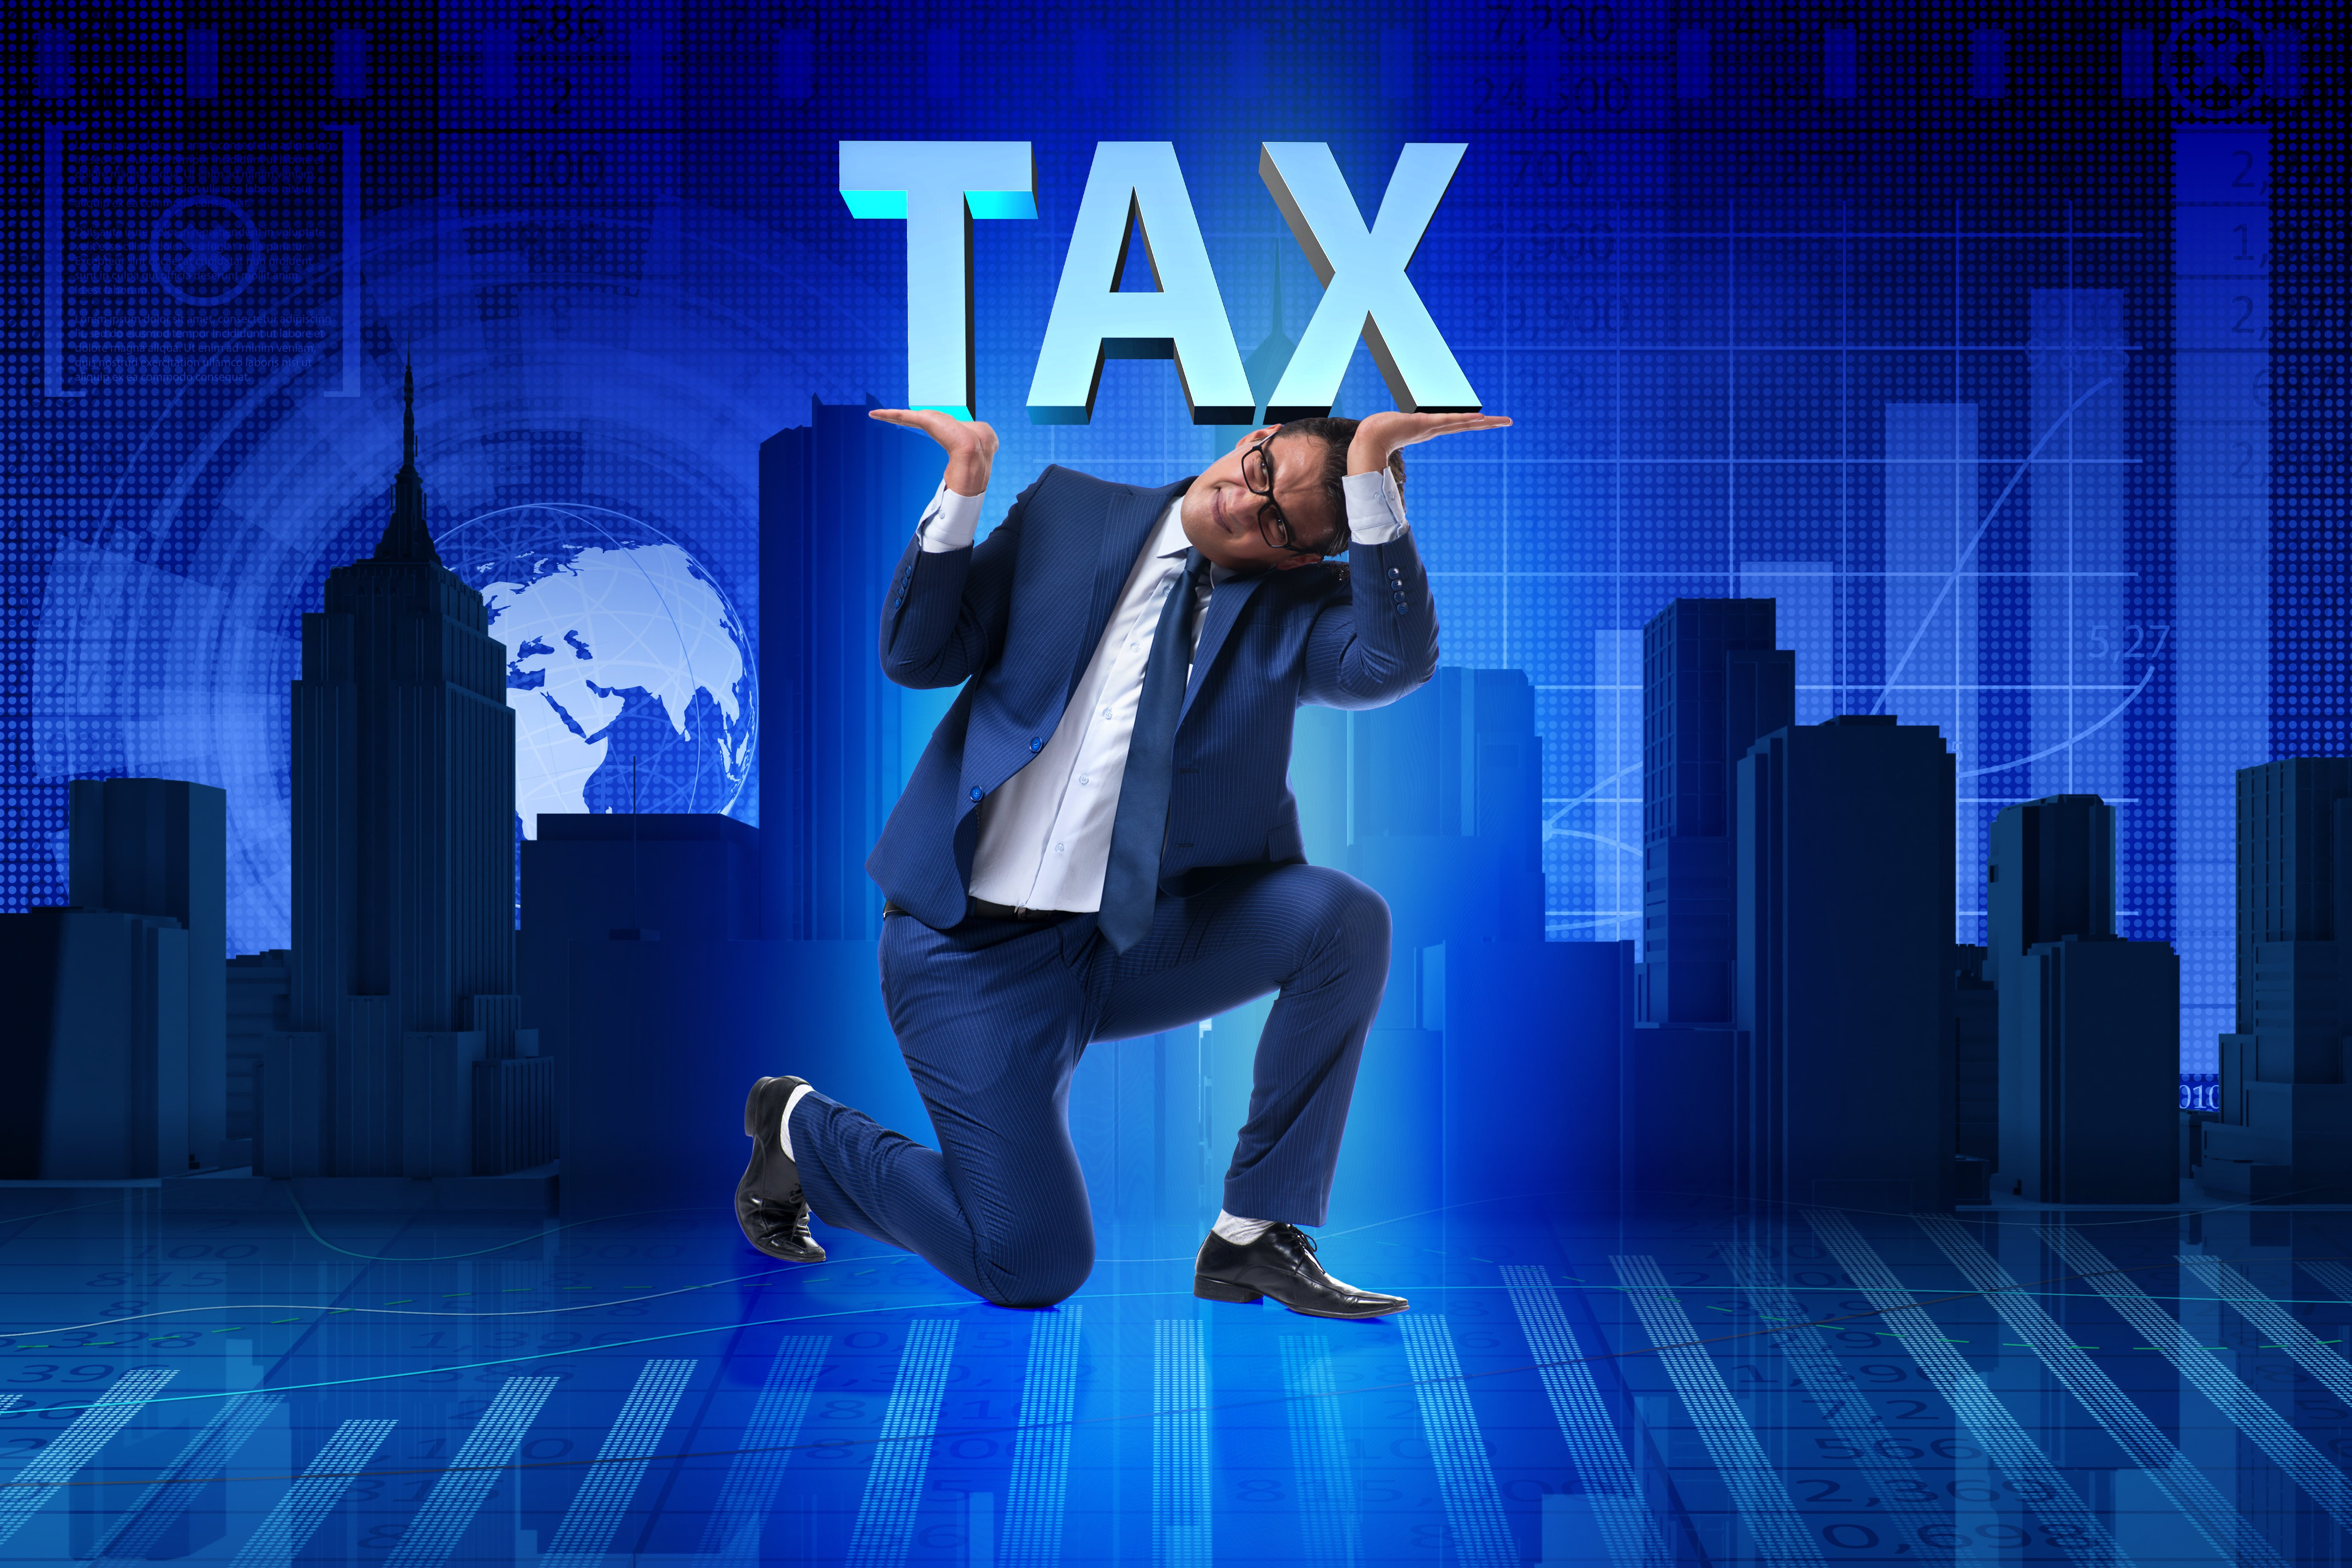 Tax Hacks 2019: 6 Ways to Get Your Taxes Done for Free | Money Talks